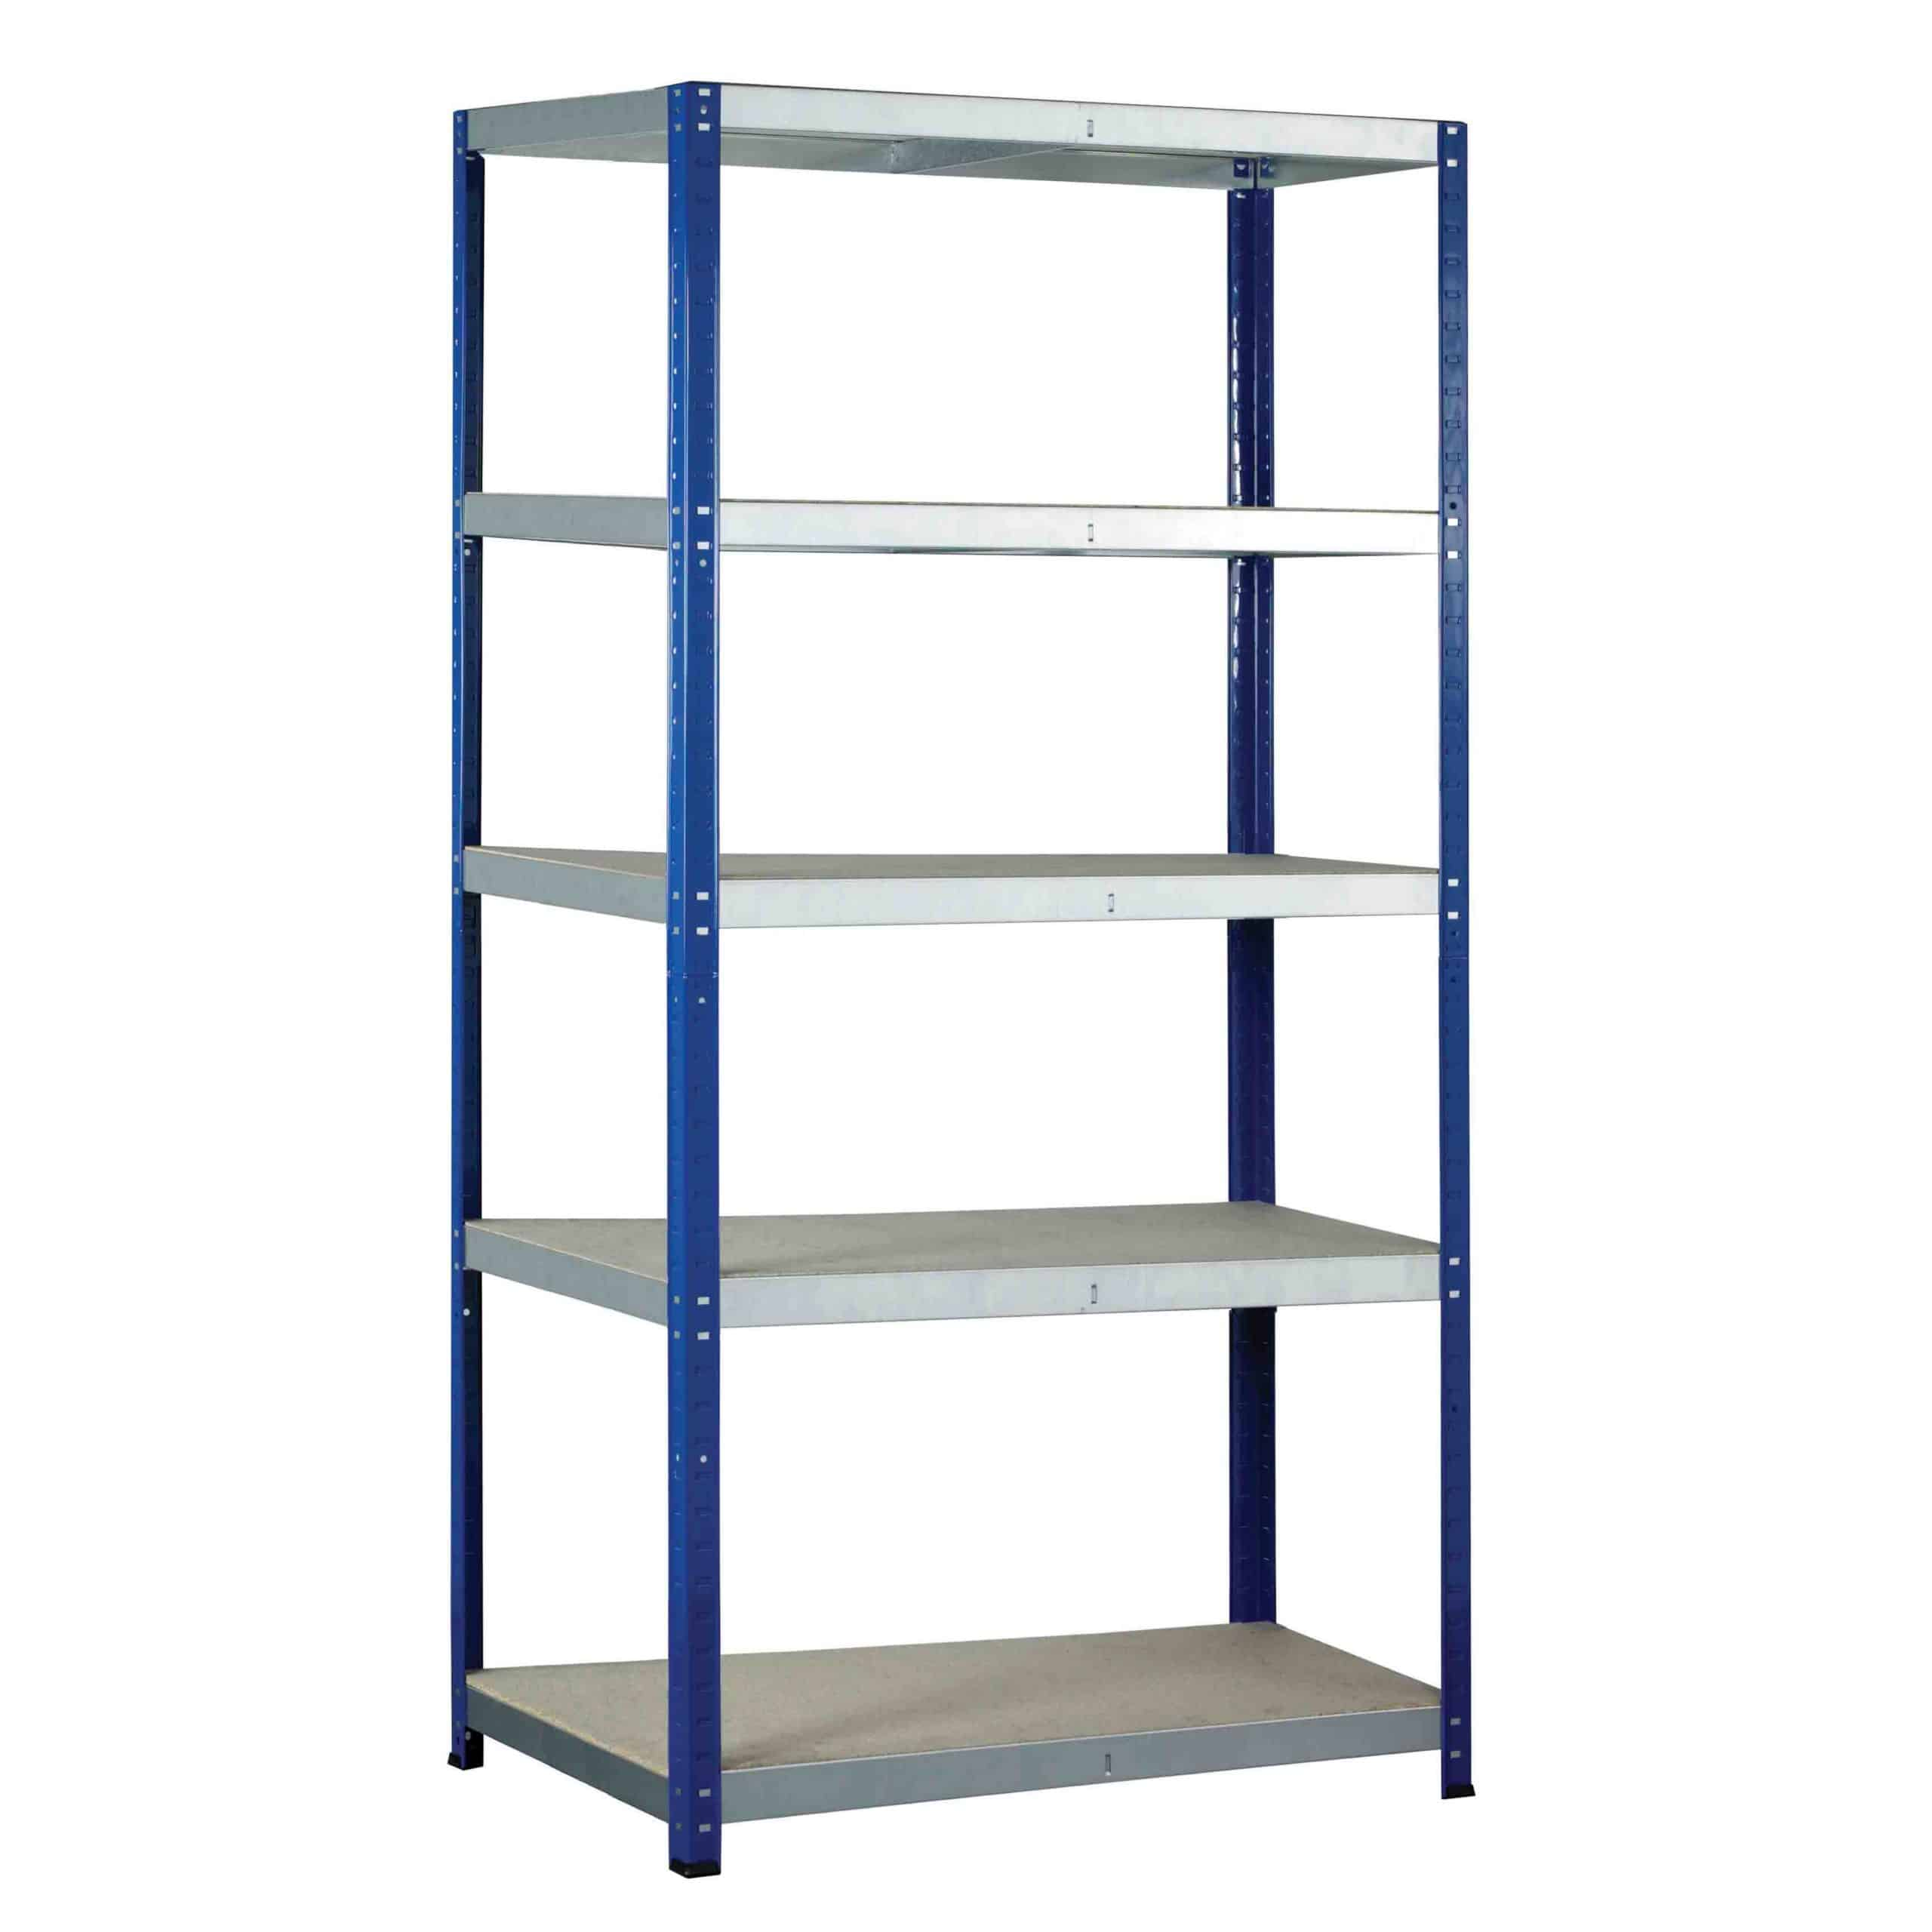 Ecorax Shelving Bays with 5 Chipboard Shelves